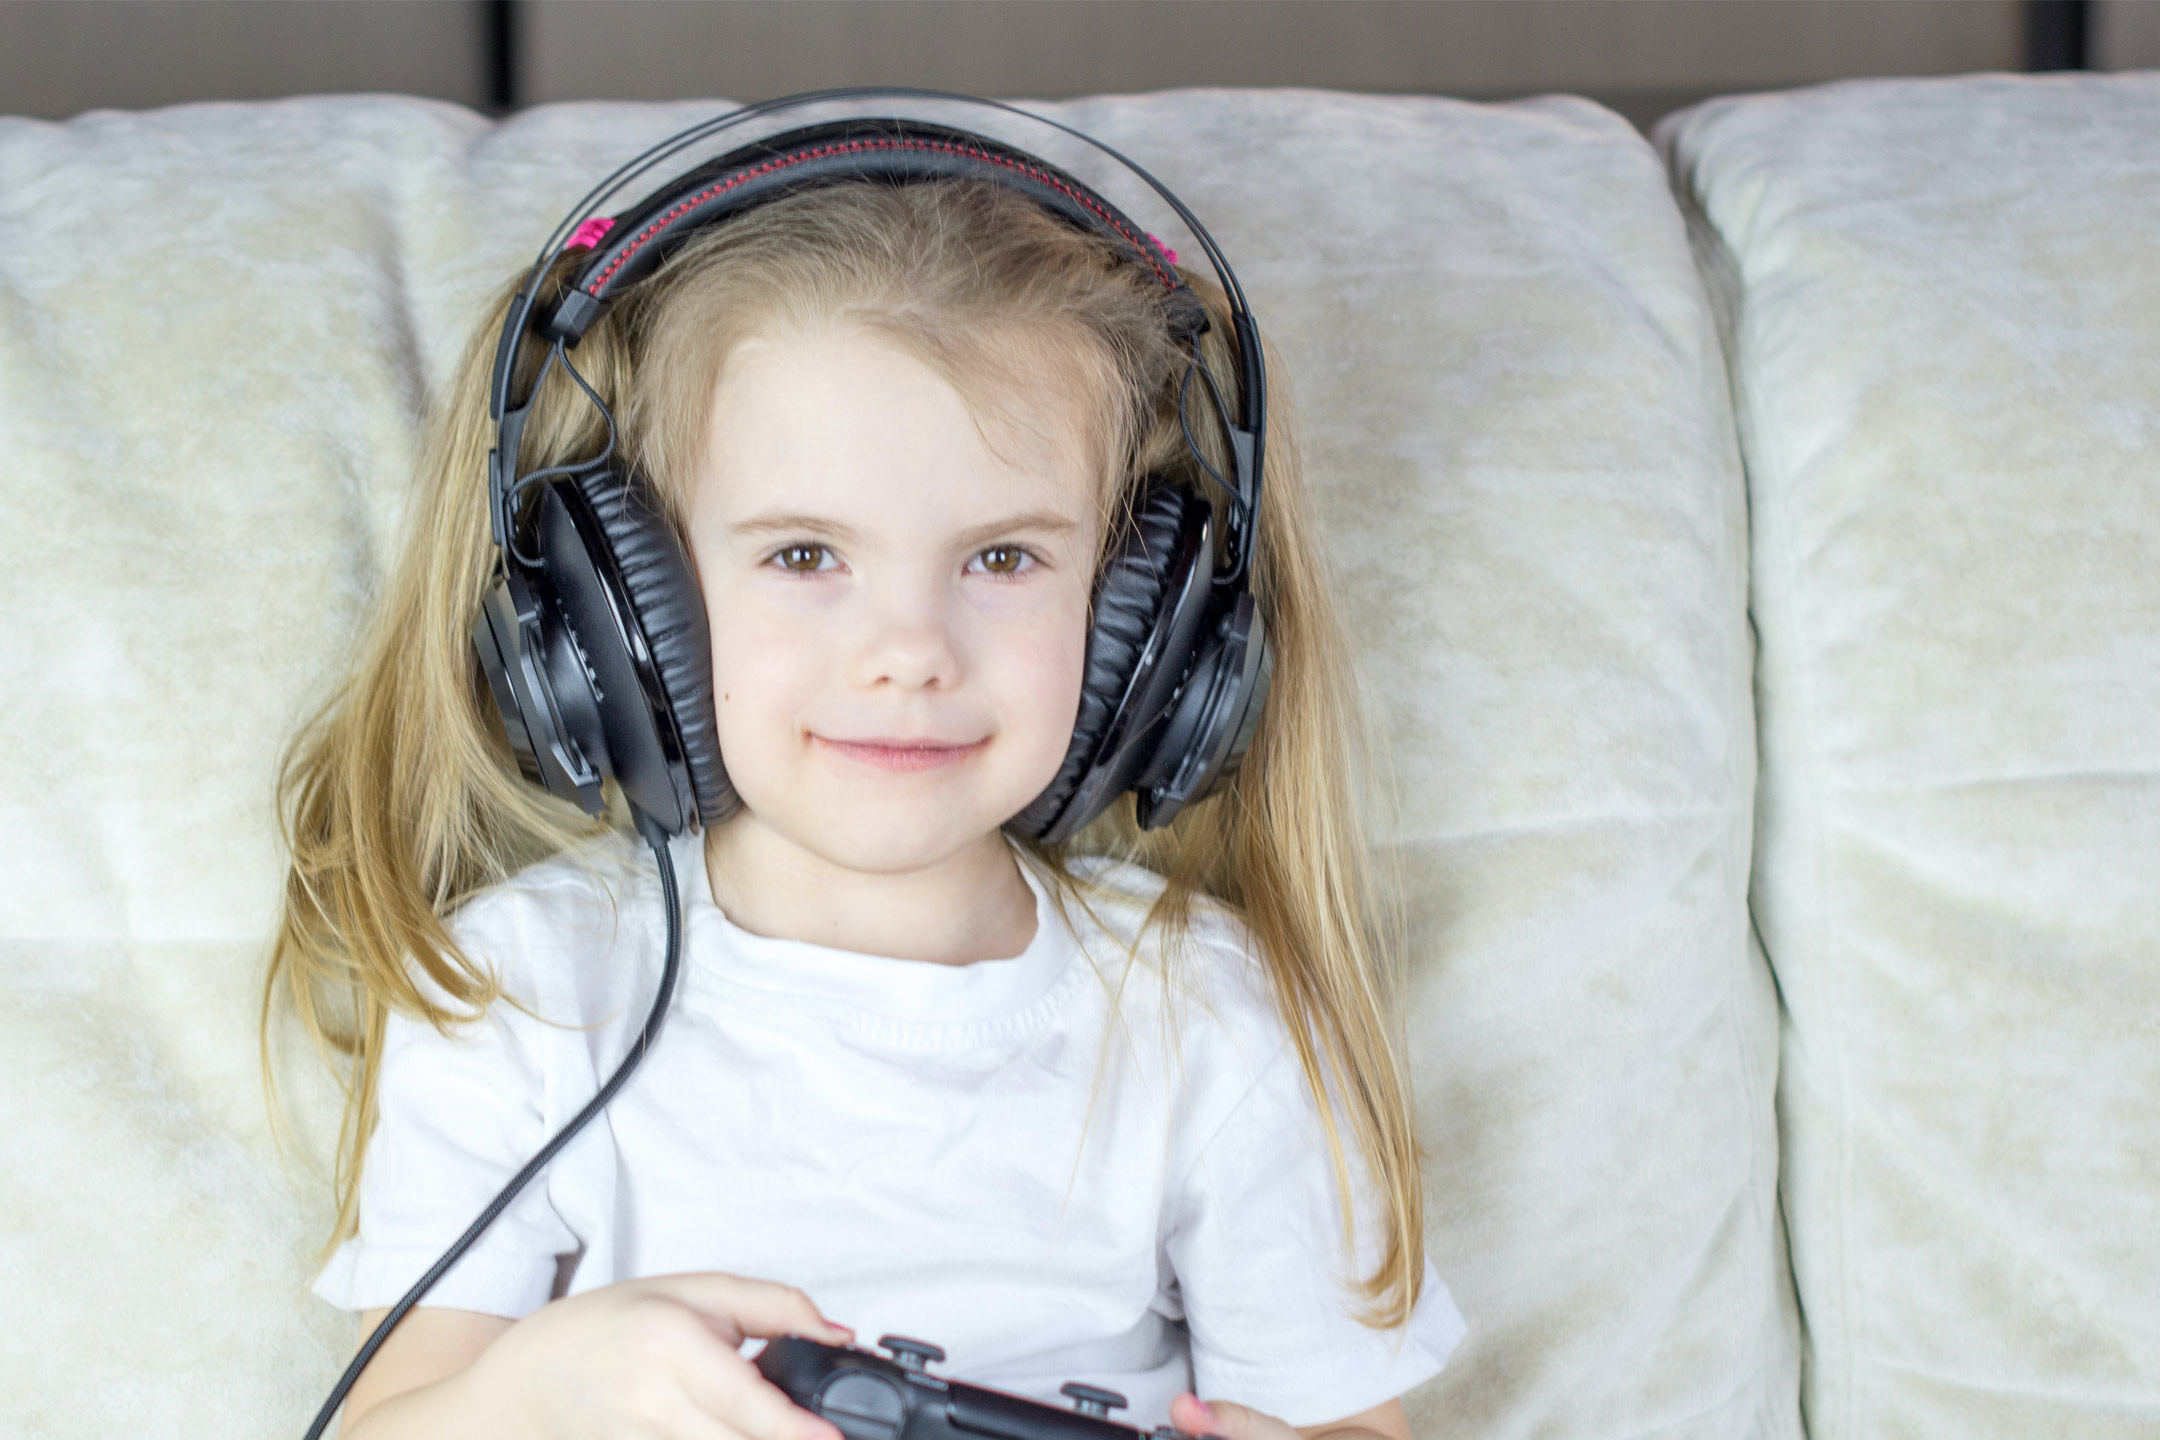 girl-with-earphones-game-handset2160